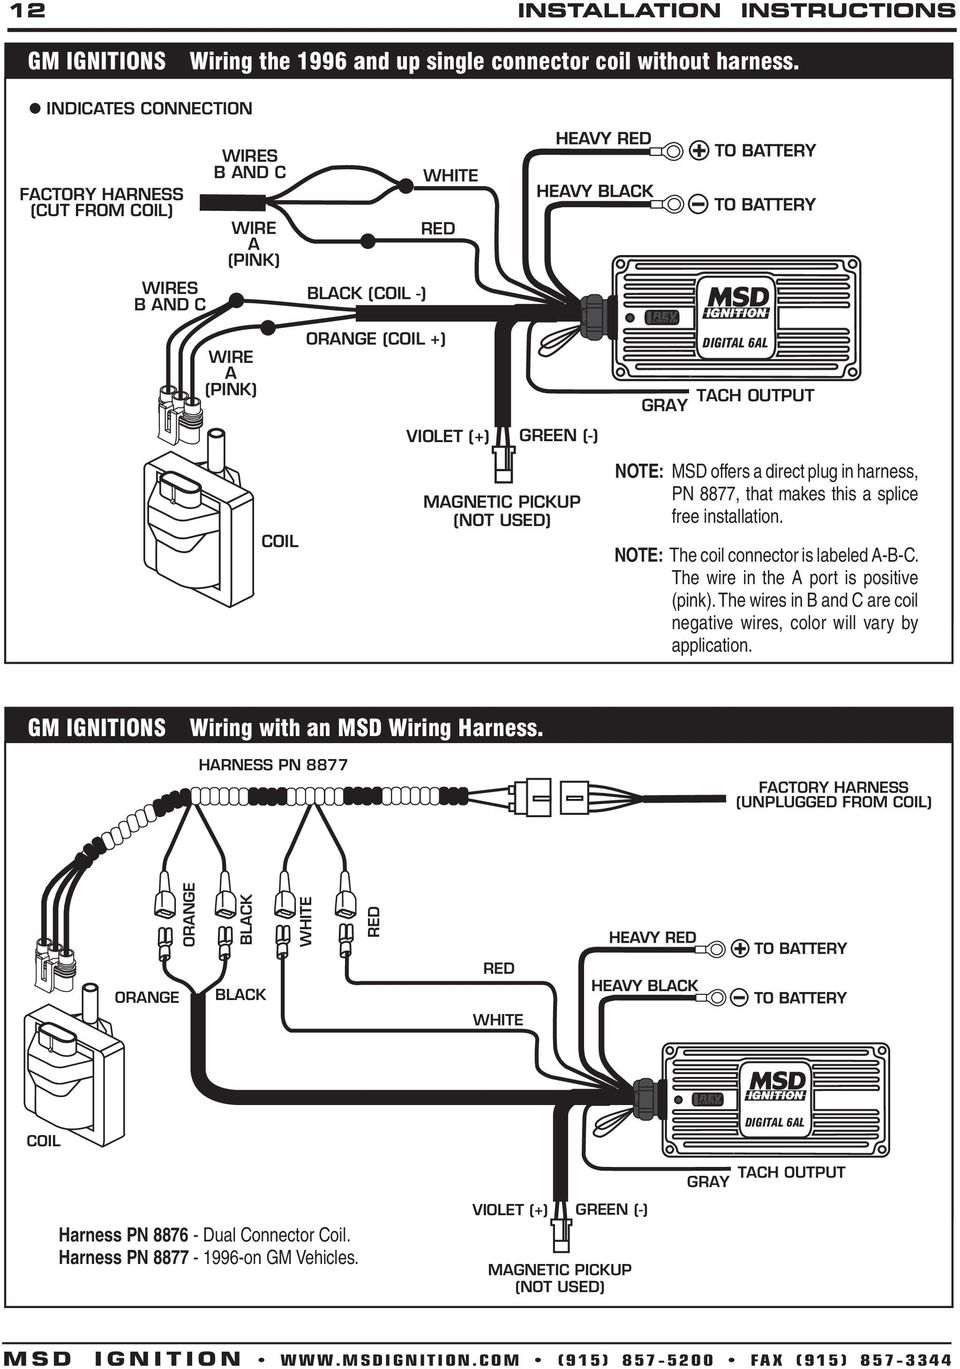 Gm Dual Connector Coil Wiring Electrical Diagram House Msd Digital 6a And 6al Ignition Control Pn 6201 Pdf Rh Docplayer Net External Resistor Ls1